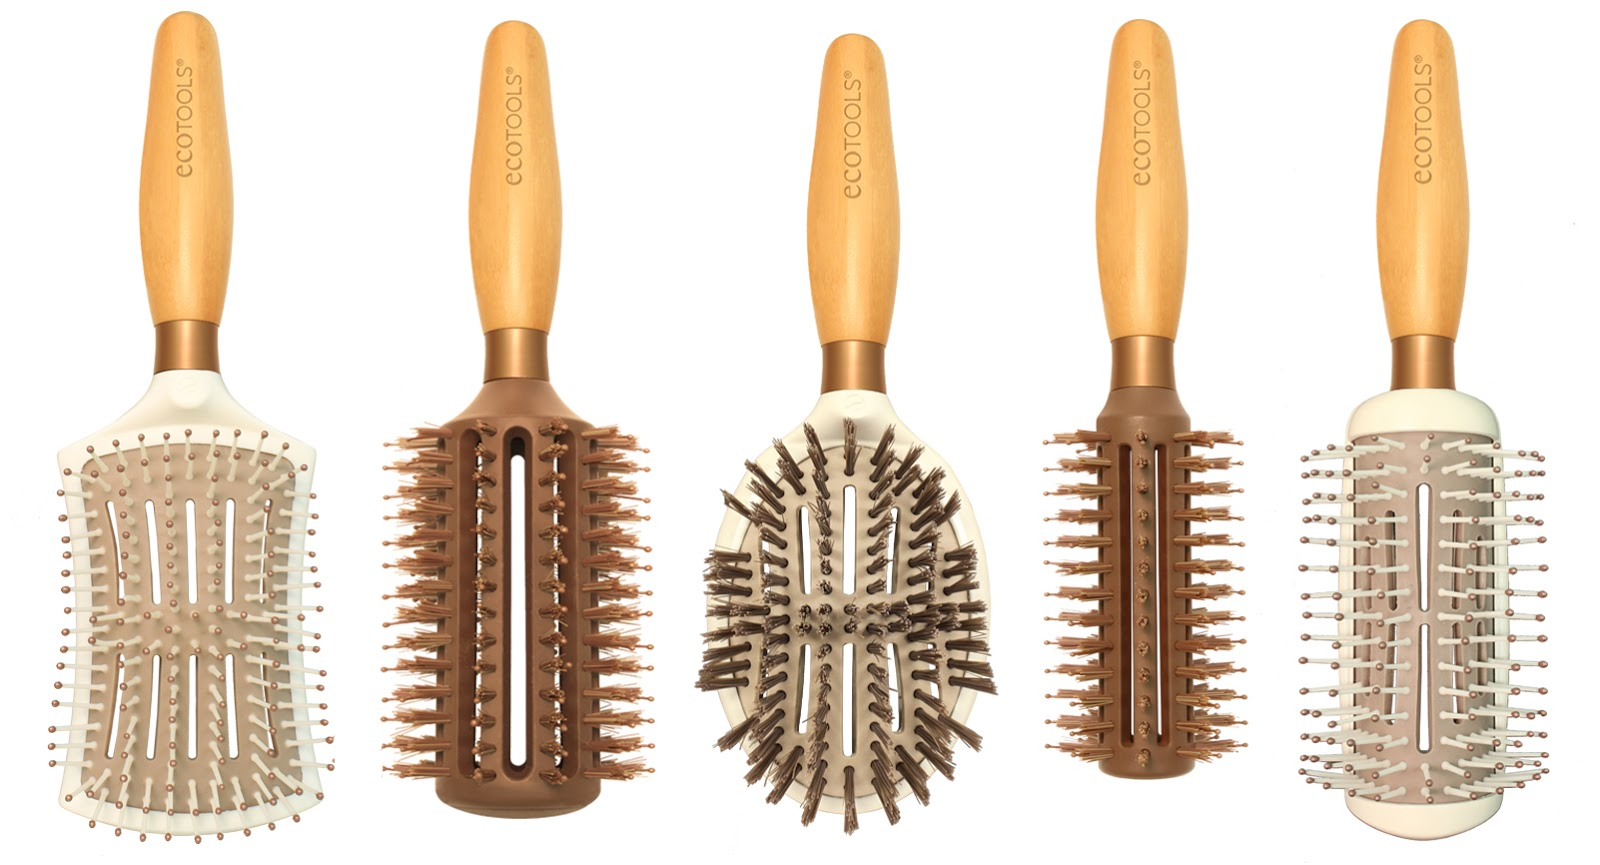 ECOTOOLS Hair Brushes review